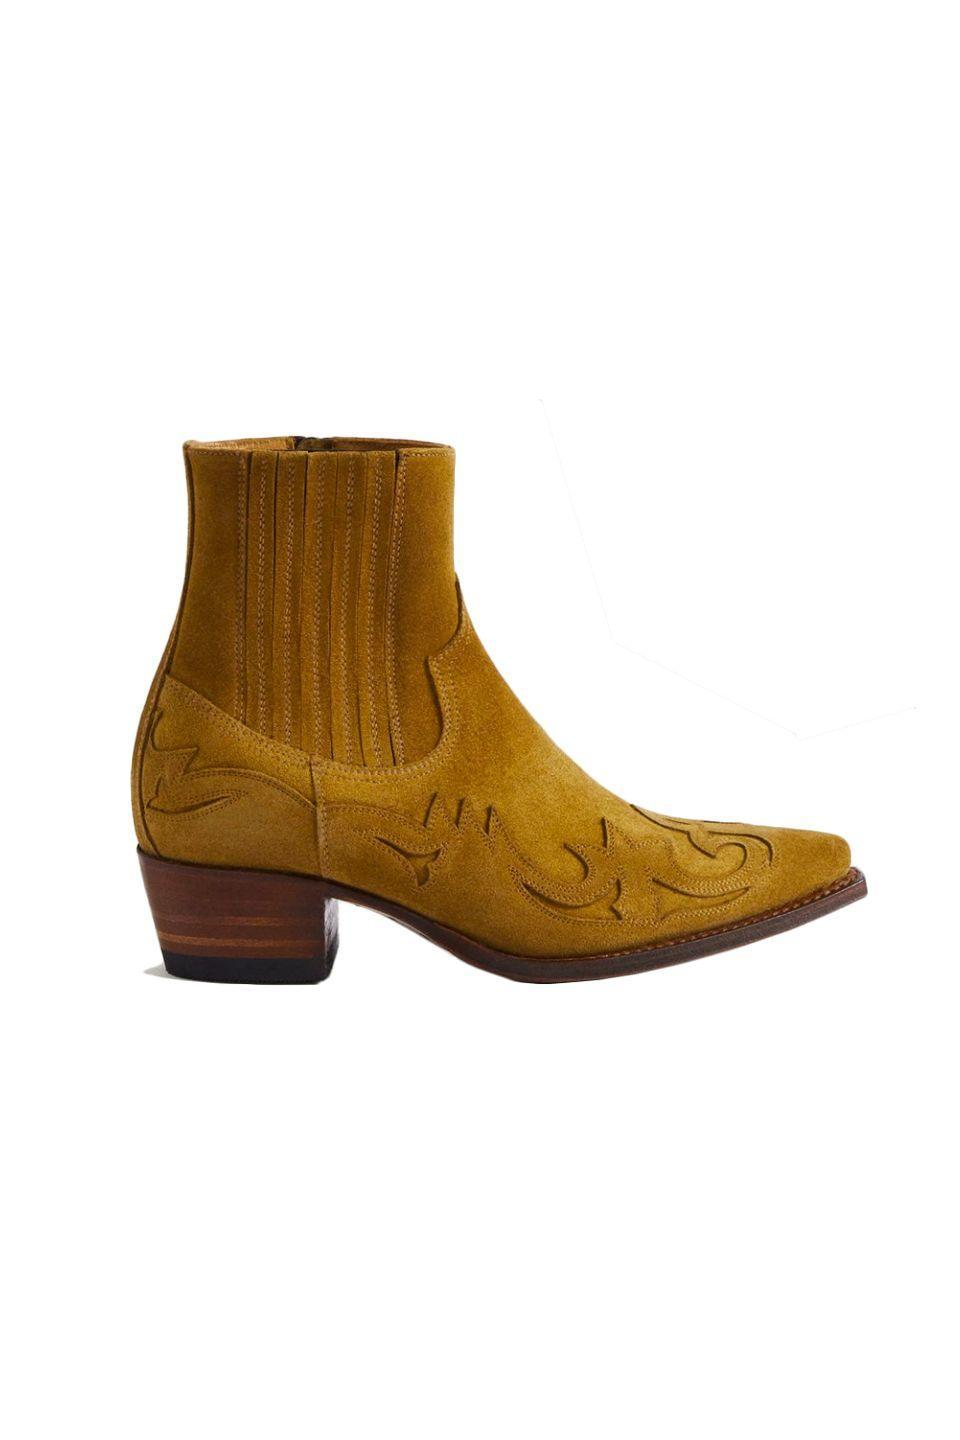 """<p><a class=""""link rapid-noclick-resp"""" href=""""https://go.redirectingat.com?id=127X1599956&url=https%3A%2F%2Fshop.mango.com%2Fgb%2Fwomen%2Fshoes-leather%2Fgoodyear-welted-leather-boots_87092022.html&sref=https%3A%2F%2Fwww.harpersbazaar.com%2Fuk%2Ffashion%2Fwhat-to-wear%2Fg18720504%2Fbest-cowboy-boots%2F"""" rel=""""nofollow noopener"""" target=""""_blank"""" data-ylk=""""slk:SHOP NOW"""">SHOP NOW</a></p><p>Mango's premium boots are Goodyear welted (a process which ensures water resistance and better temperature regulation), so they'll last you. The hand-stitched appliqué and panelled sock detailing are a modern update on classic western footwear. </p><p>Goodyear welted leather boots, £299, mango.com</p>"""